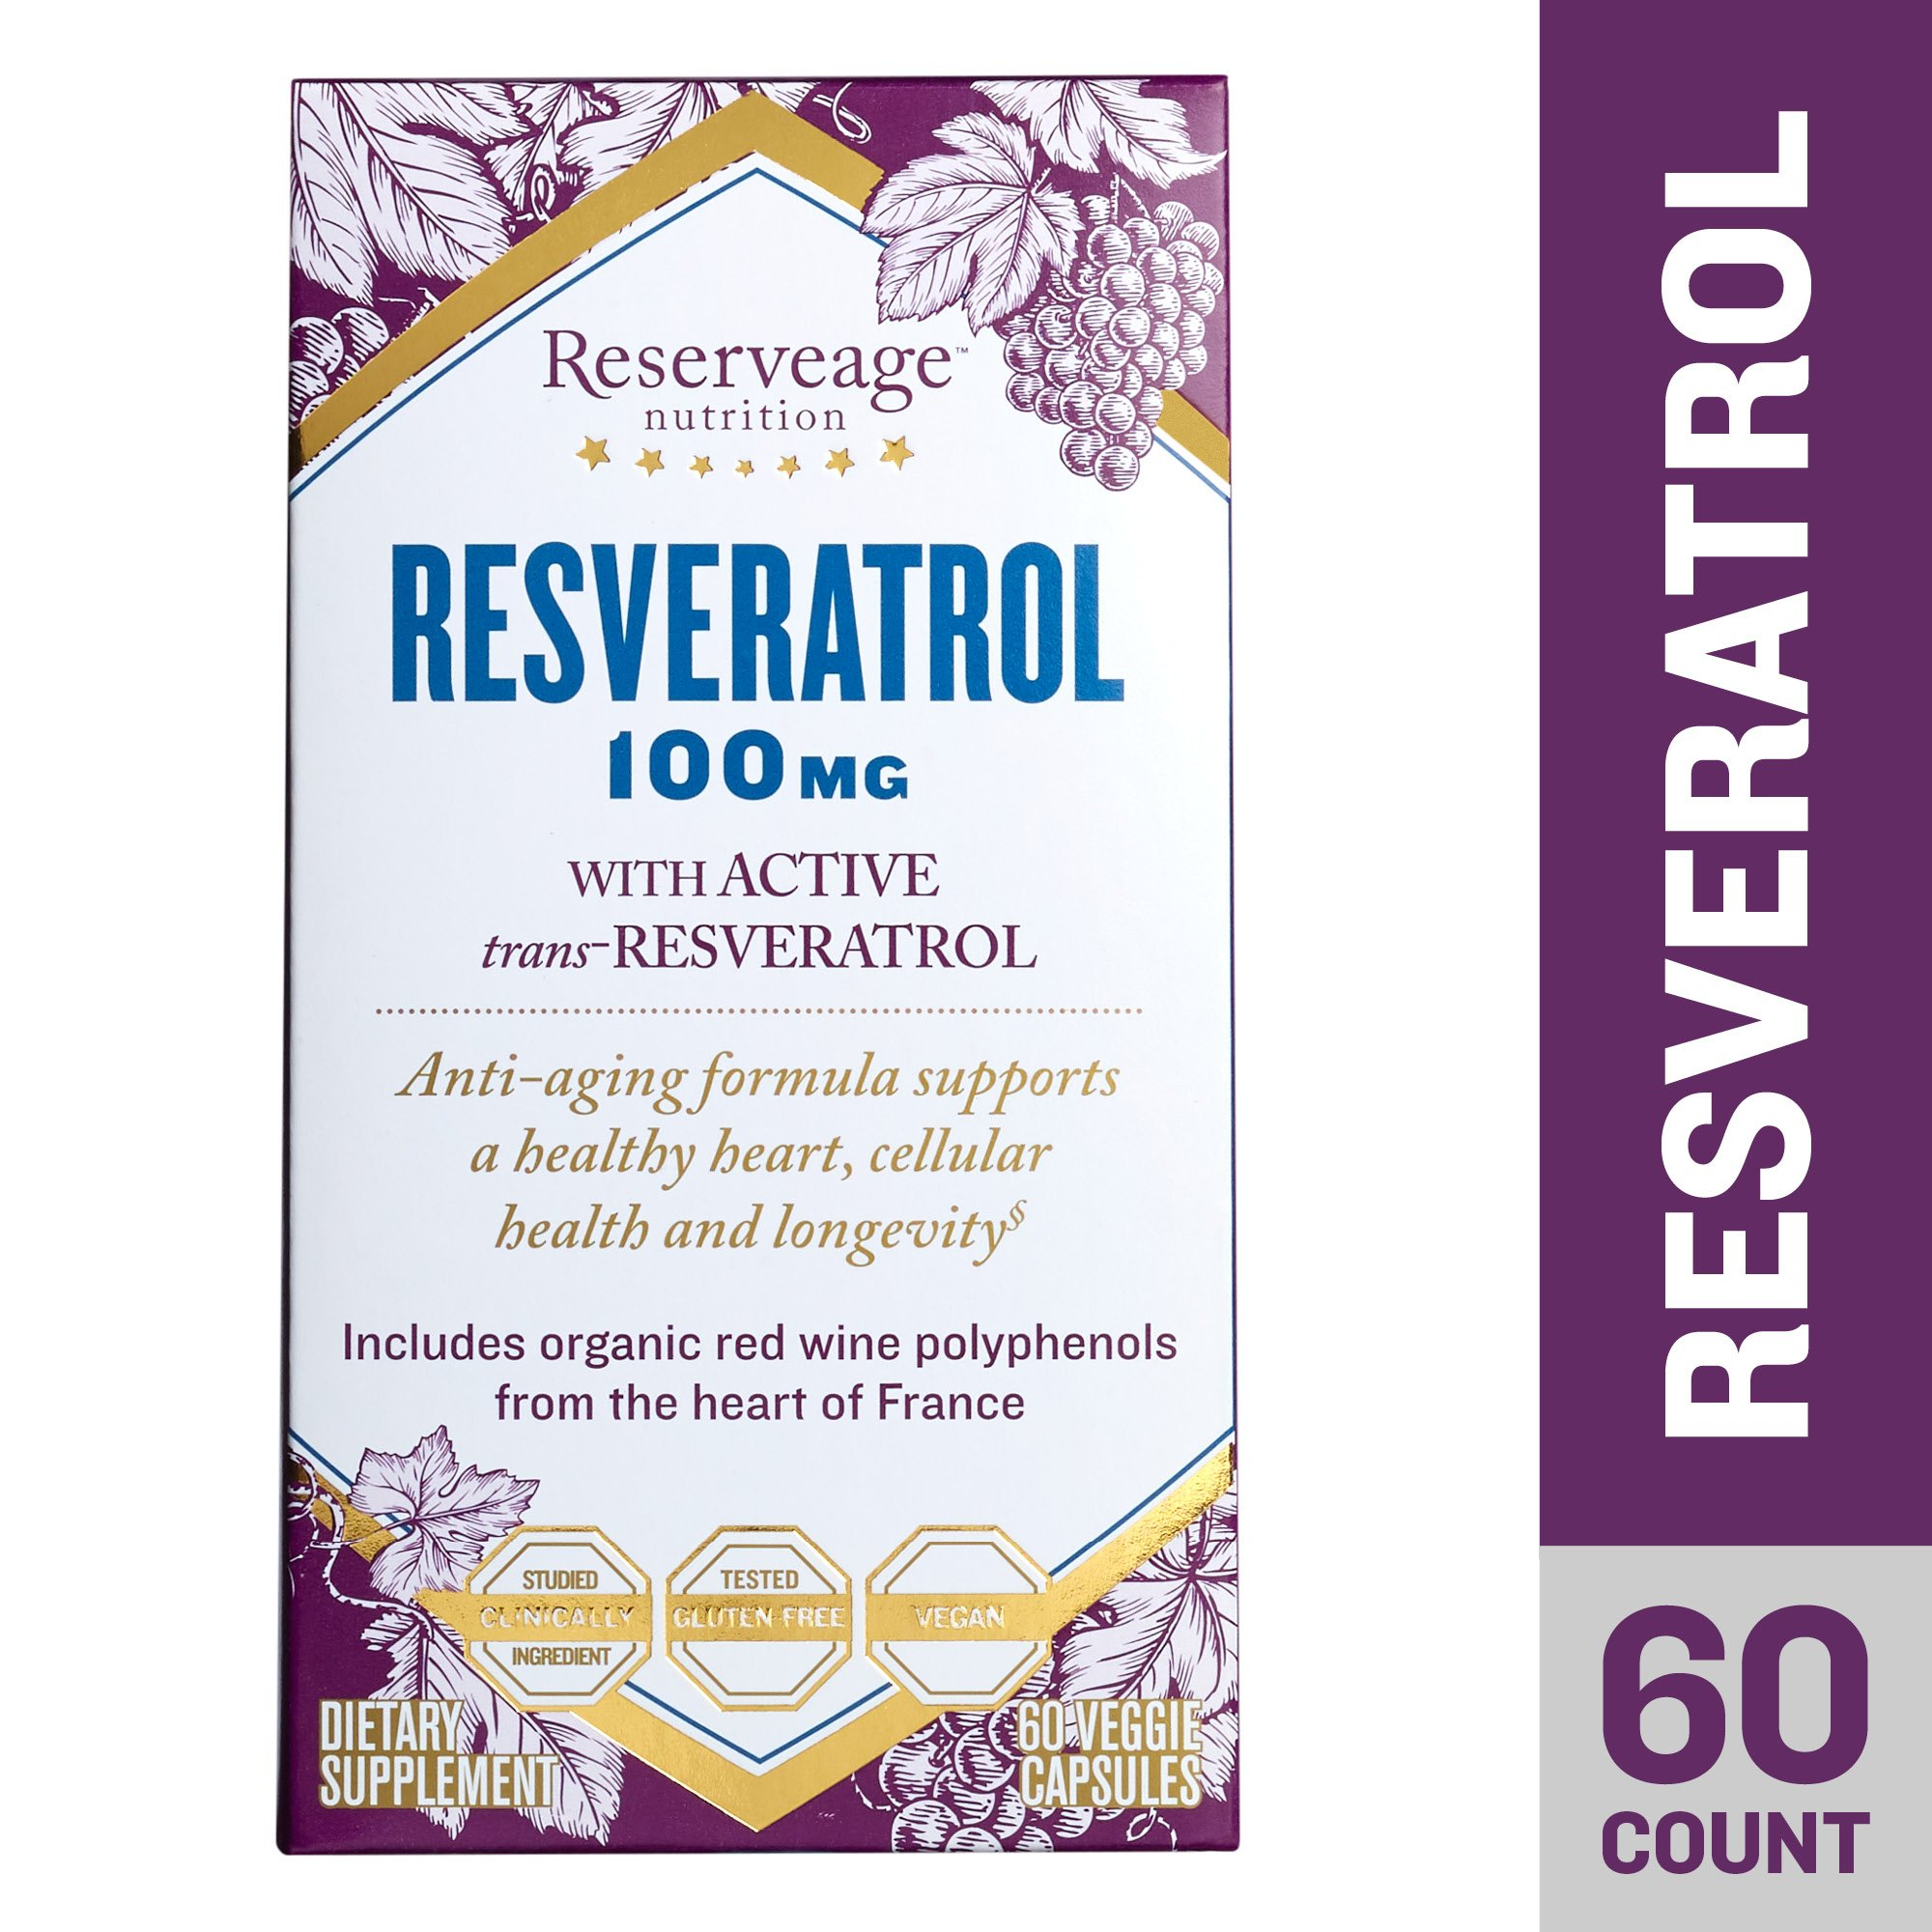 Reserveage, Resveratrol 100 mg Antioxidant Supplement for Heart and Cellular Health, Supports Healthy Aging, Paleo, Keto, 60 capsules (60 servings) by Reserveage Nutrition